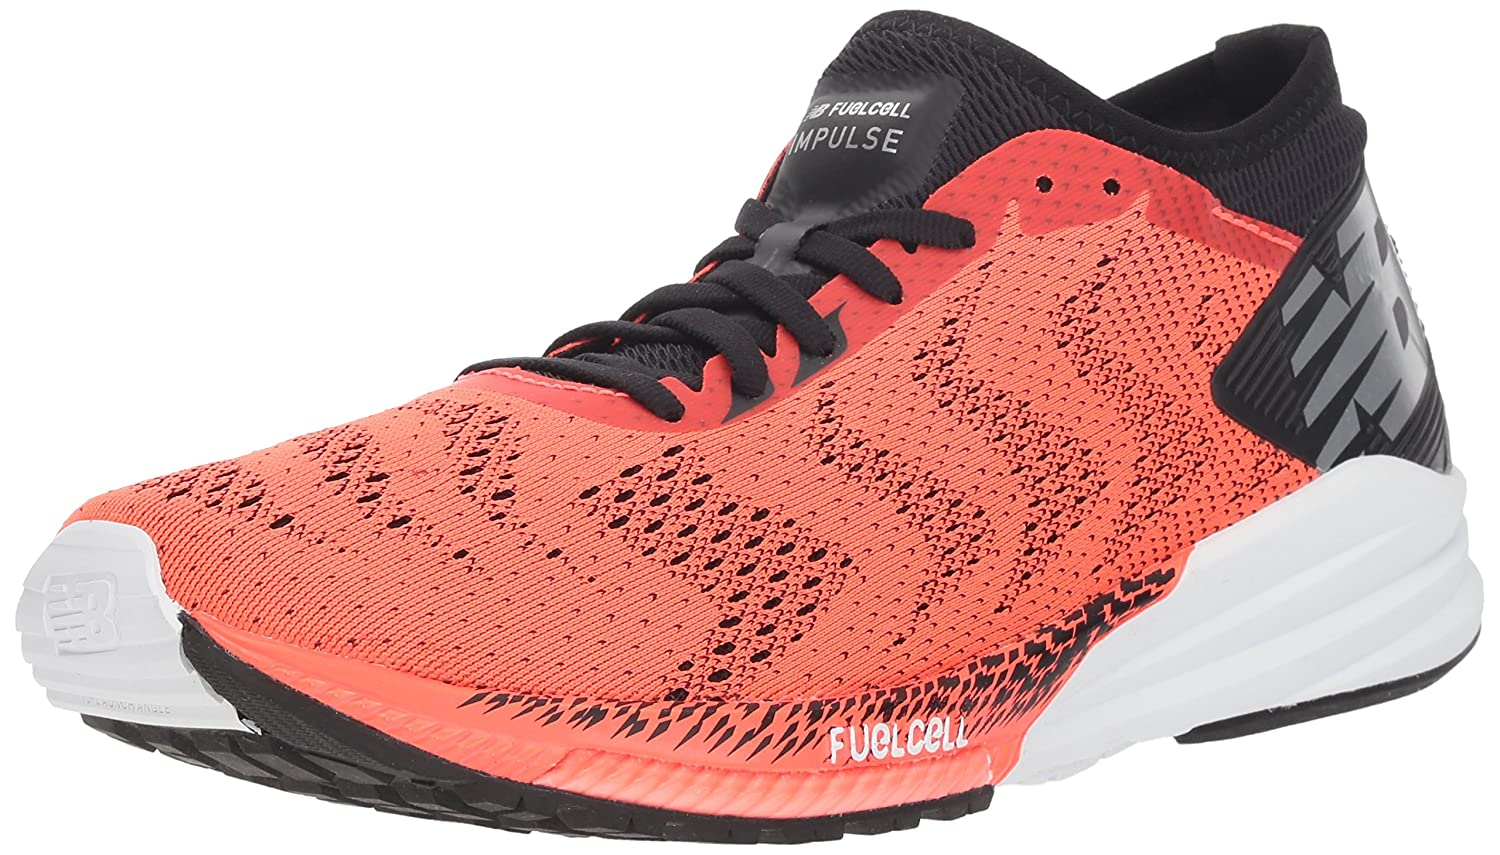 New Balance Fuel Cell Impulse, Hausschuhe de Running para Hombre Orange (Flame schwarz Rb)